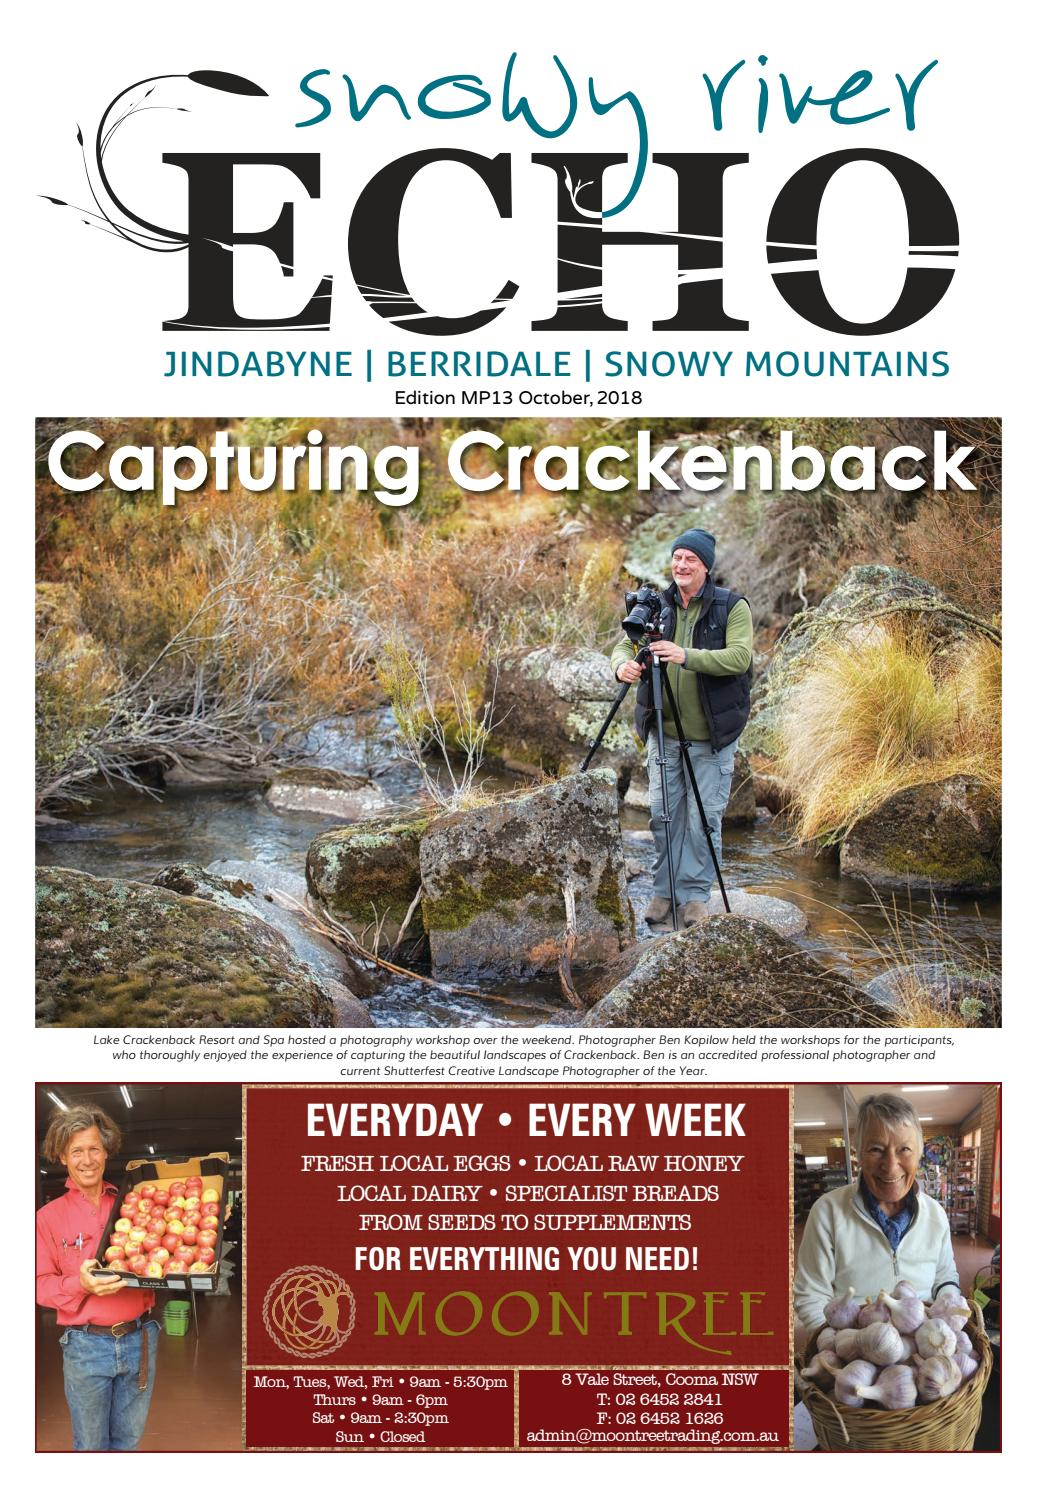 The Snowy River ECHO October 2018 Edition by Monaro Post - issuu